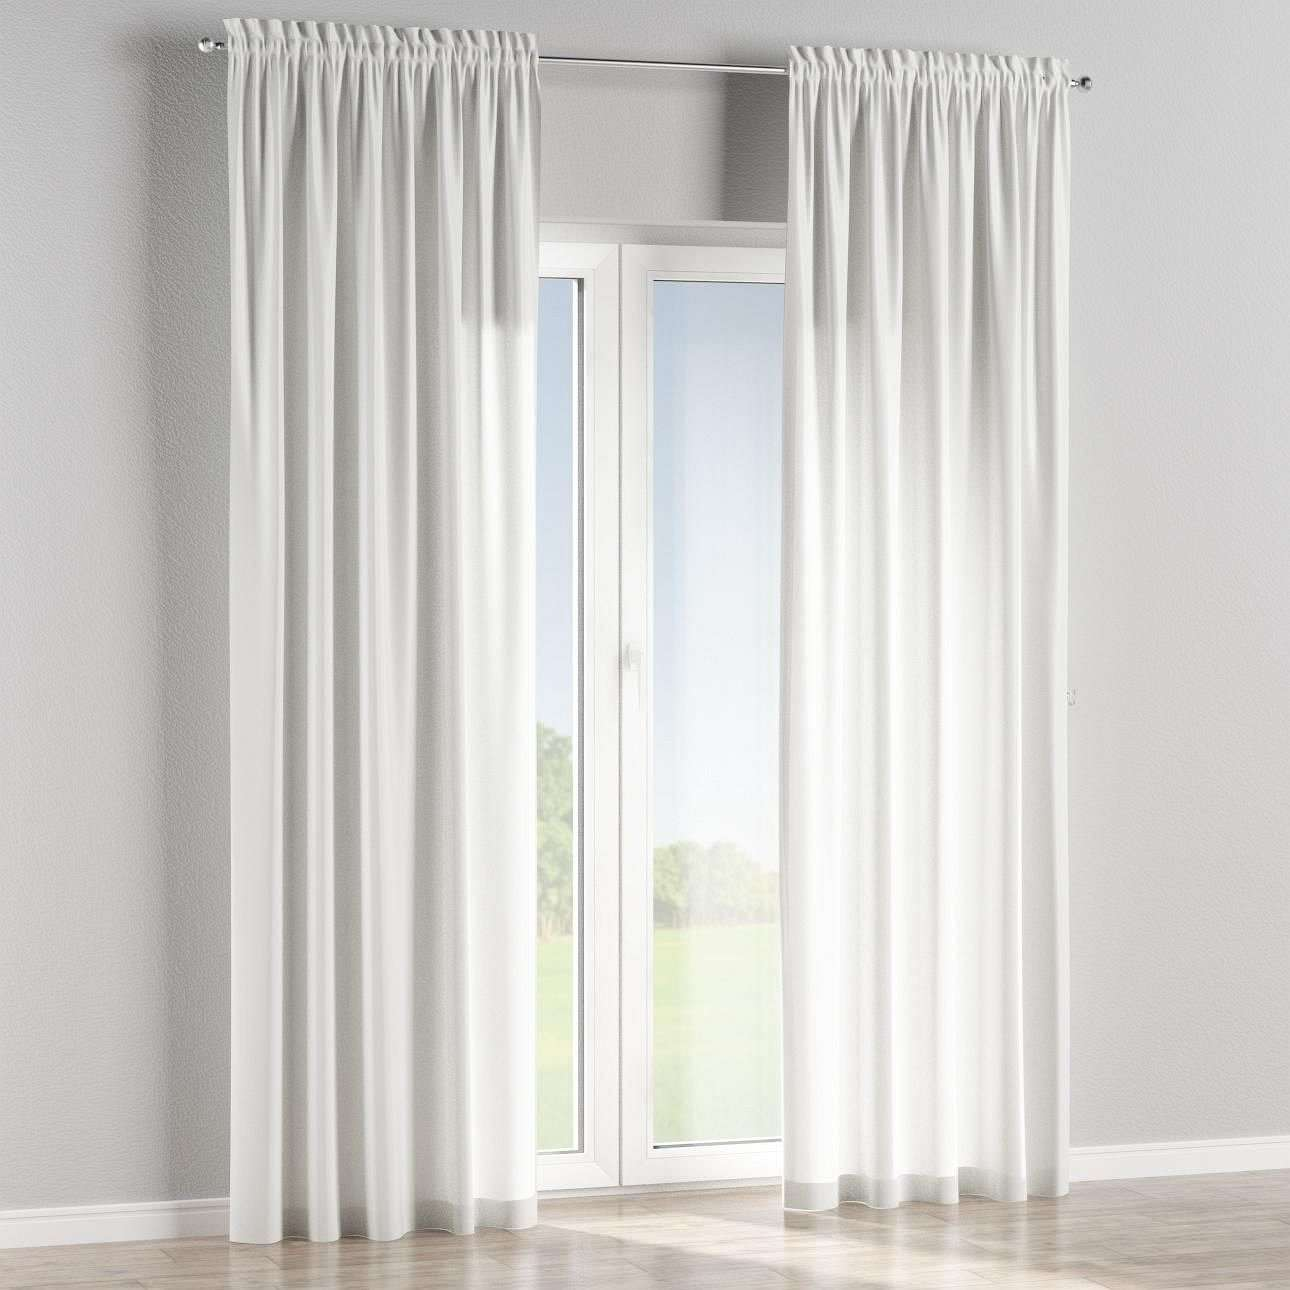 Slot and frill curtains in collection Mirella, fabric: 141-13